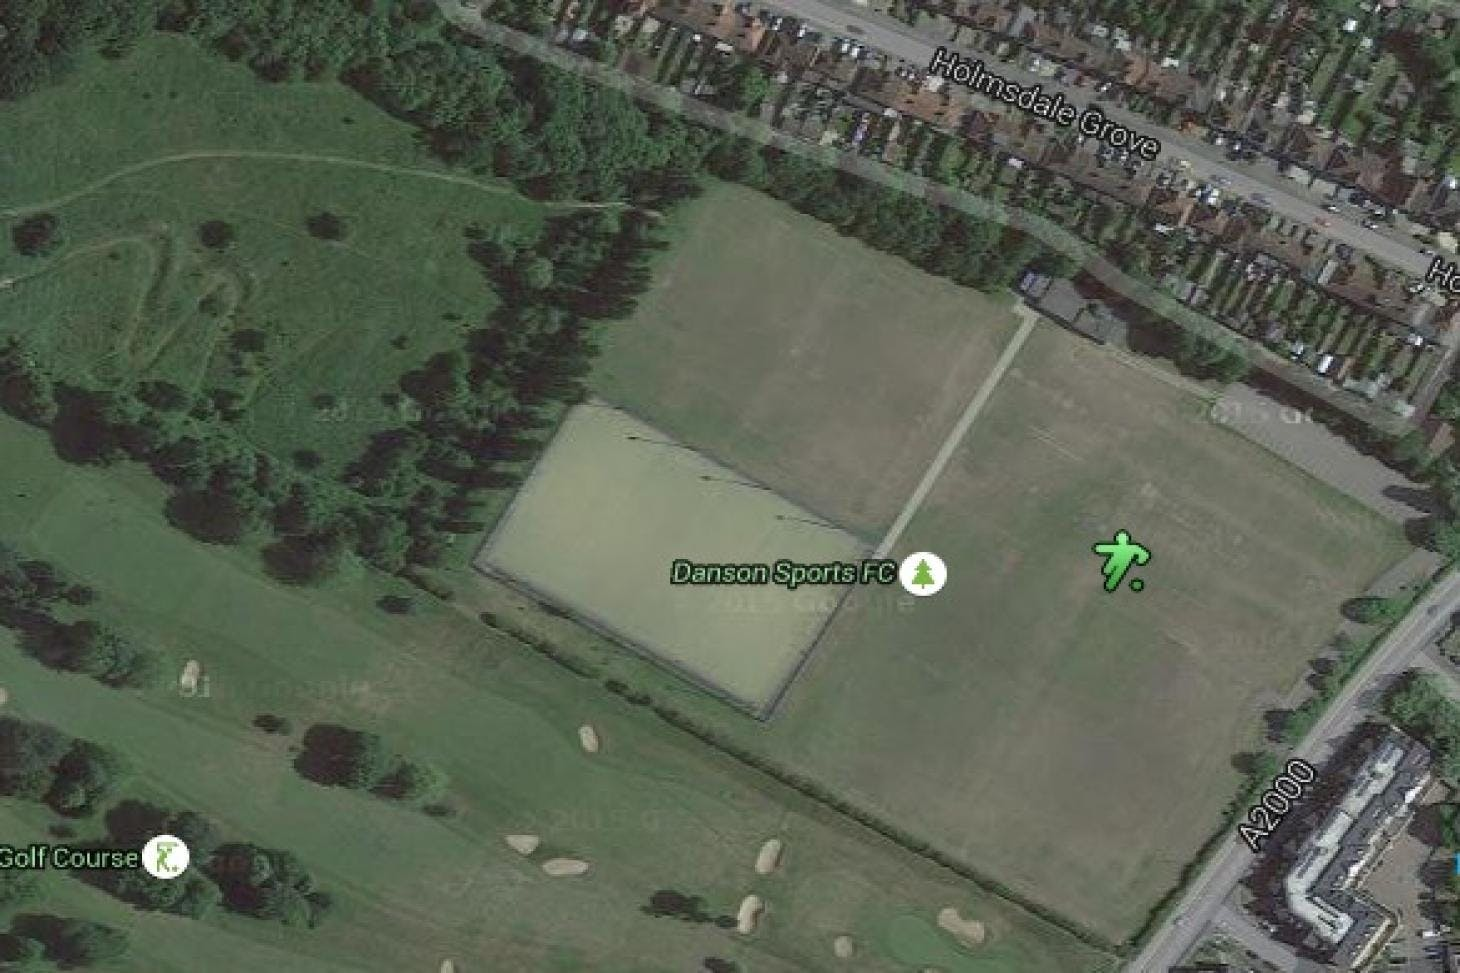 Mayplace Recreation Ground (Danson Sports Football Club) 5 a side | Astroturf football pitch